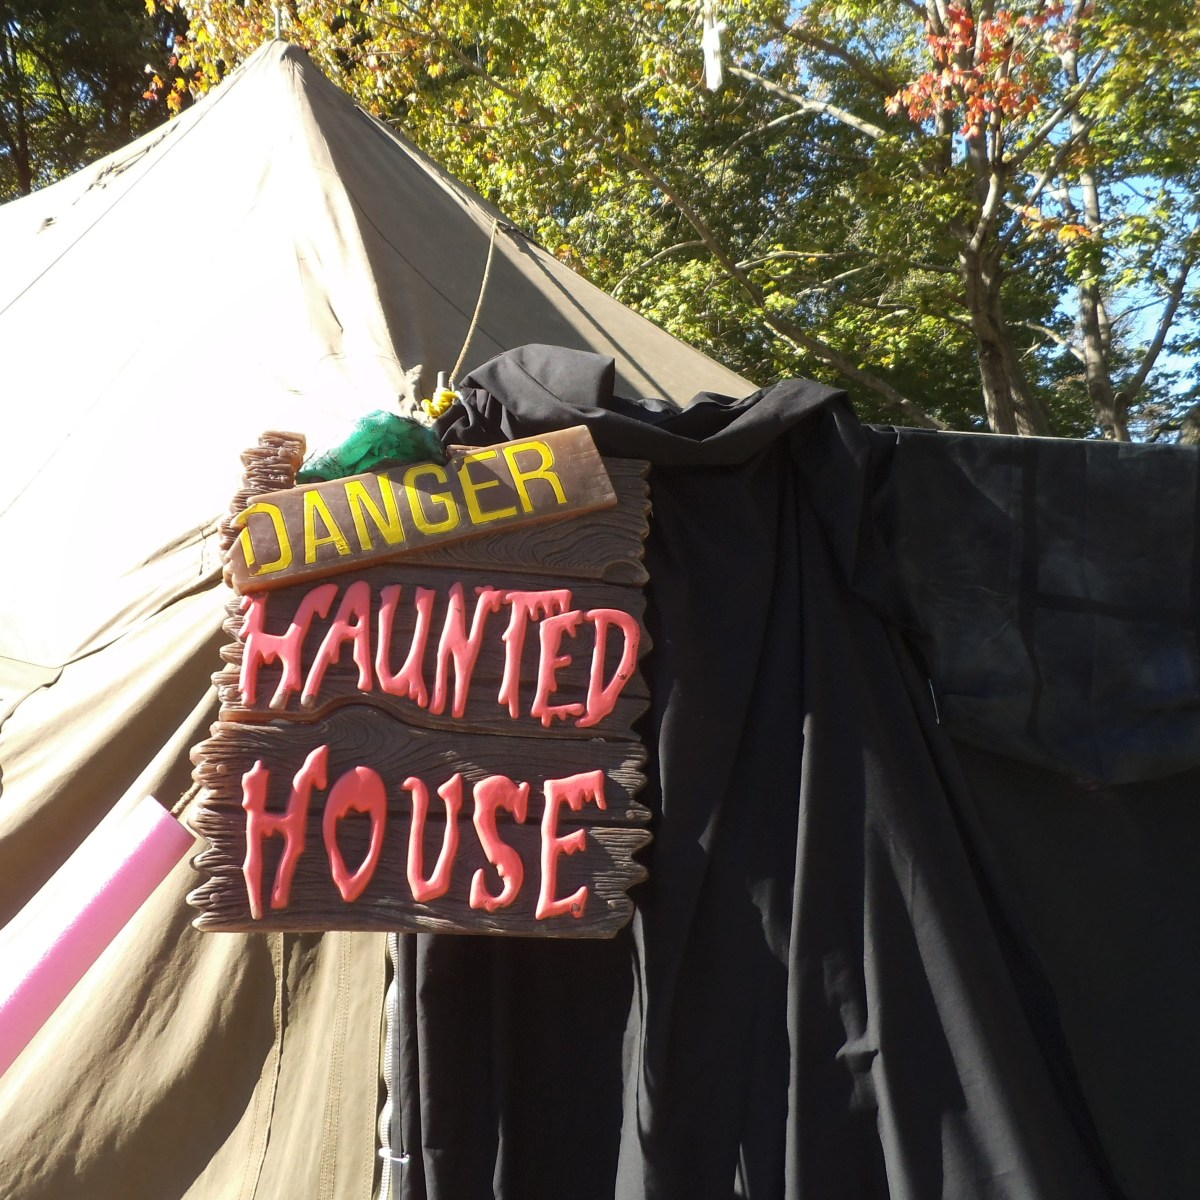 Here they've draped black sheets and painter's drop cloths to enclose part of the porch. The sign is one you could make with paint and boards you have around. I sure would be hesitant to enter.